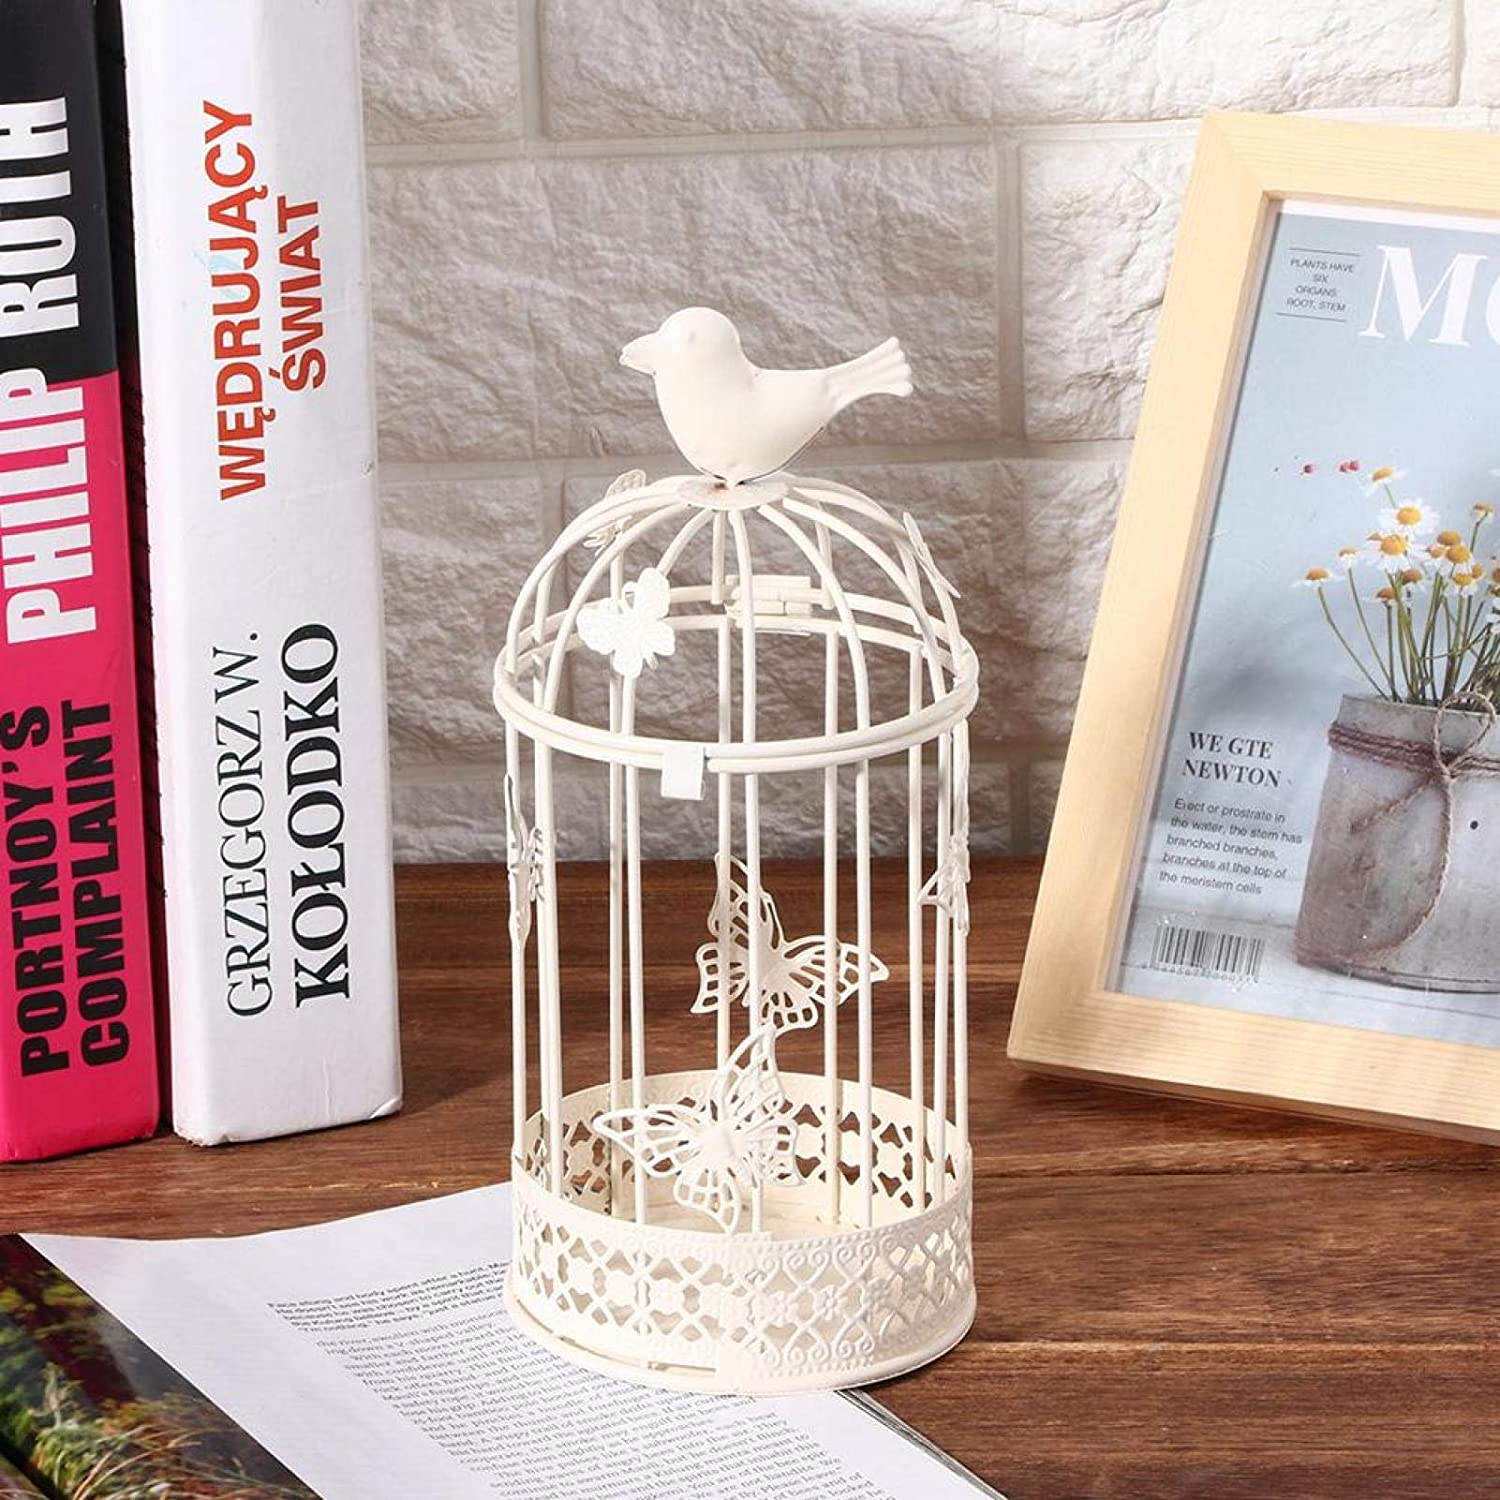 Retro Decorative Bird Cage Hanging Candle Holders Lantern Hollow Out Vintage for Home Decor Wedding Ornament Table Desk(White)